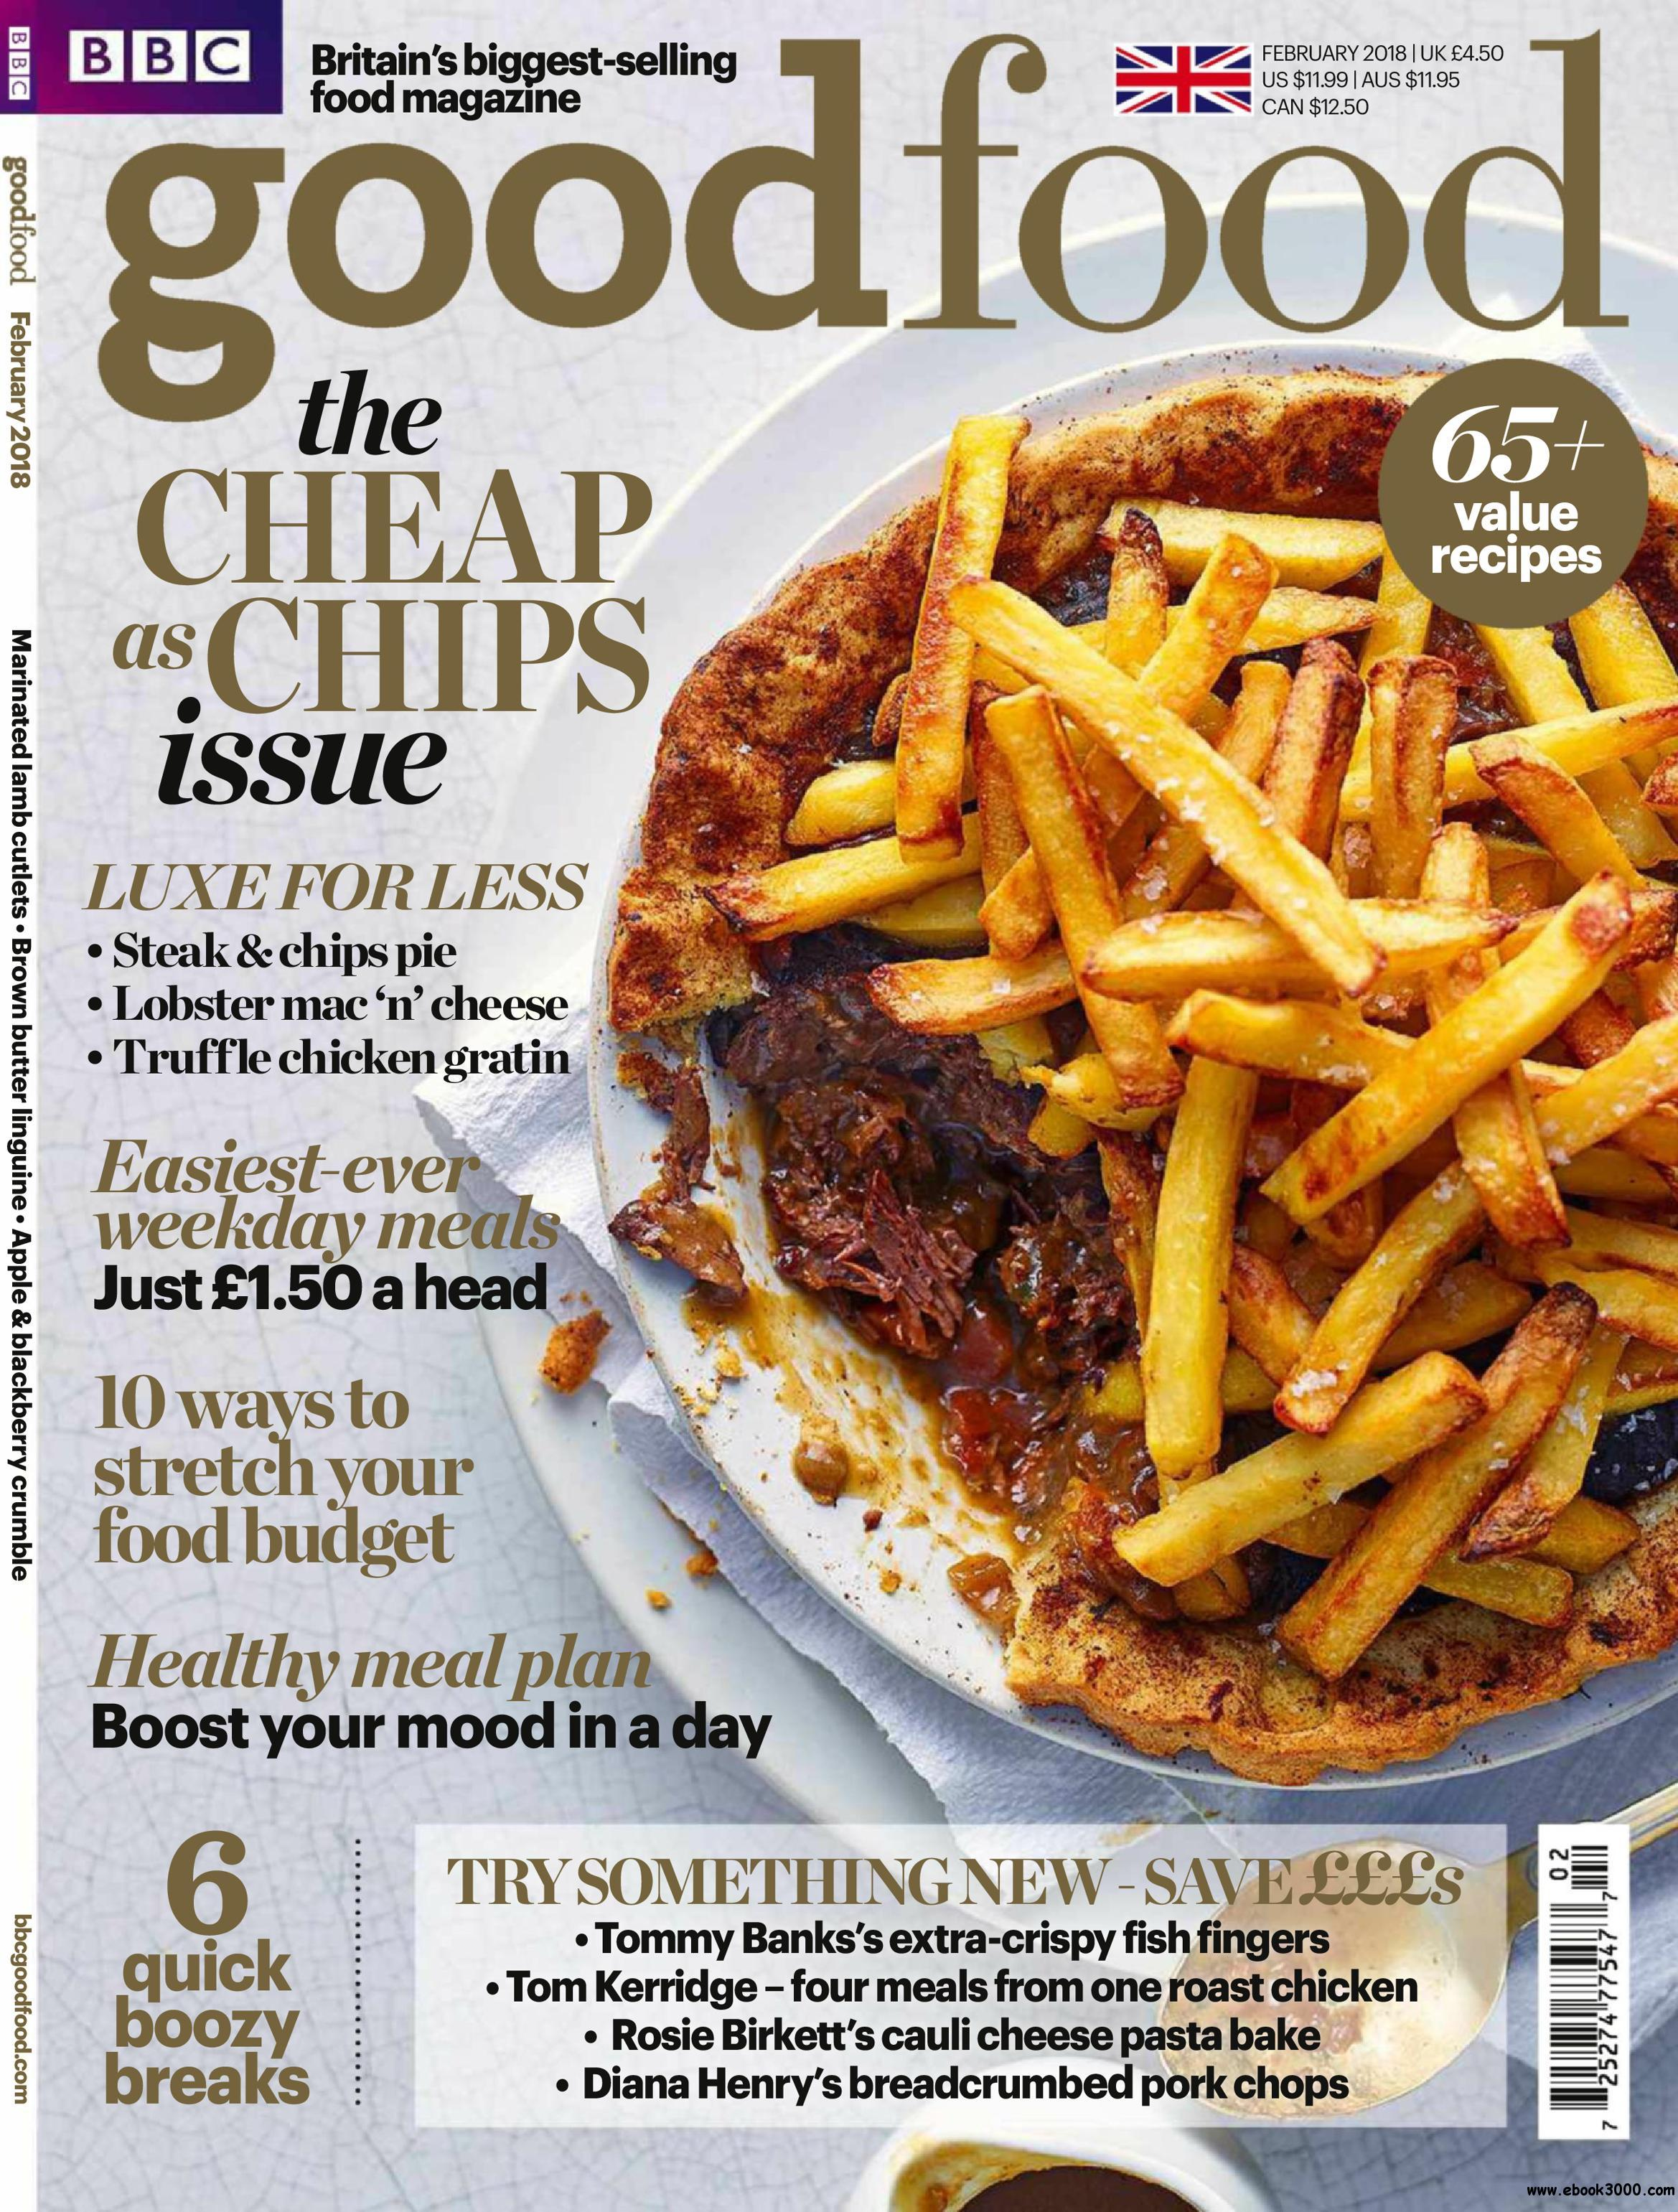 Bbc good food uk march 2018 free ebooks download bbc good food uk march 2018 forumfinder Image collections